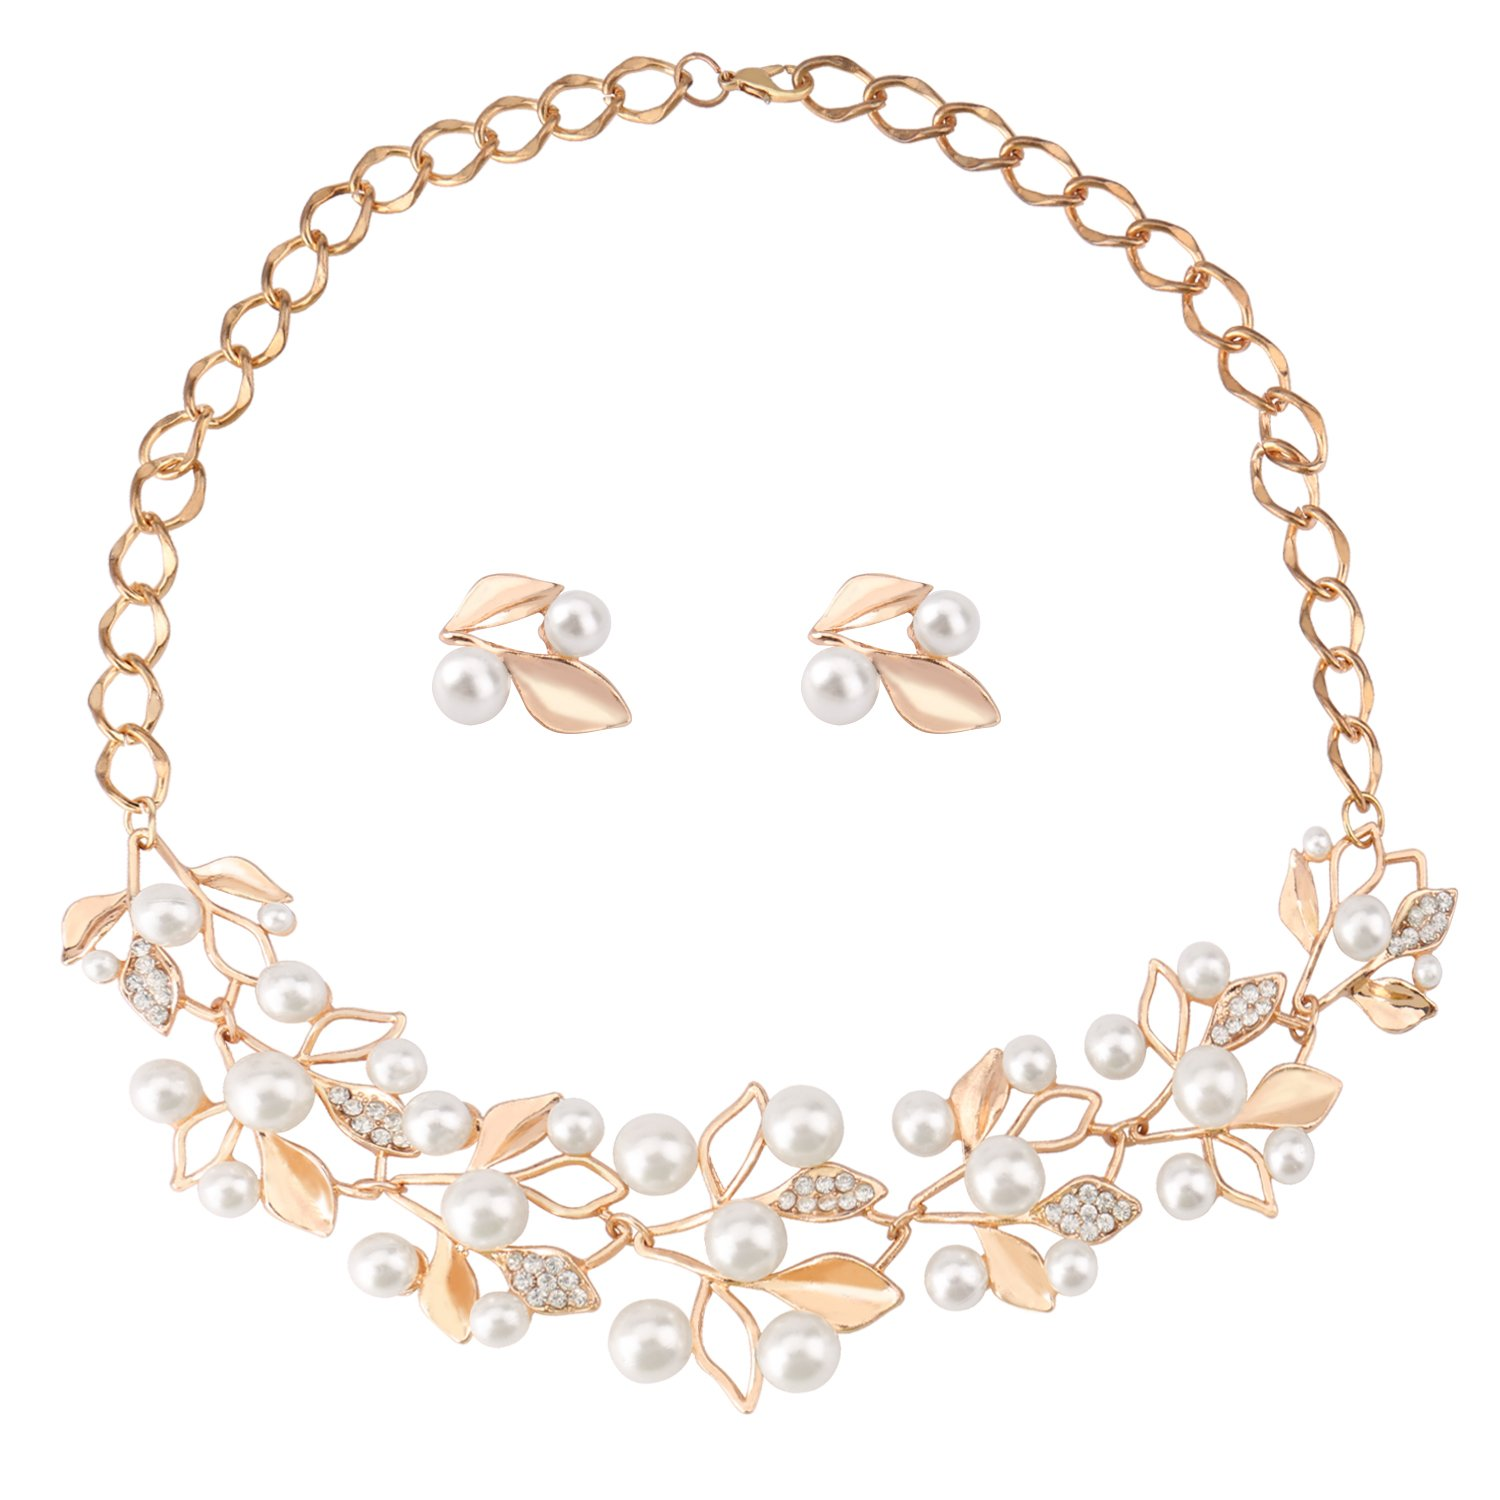 UHIBROS Gold Rhinestone Crystal Pearl Necklace Earrings Stub Alloy Jewelry Set